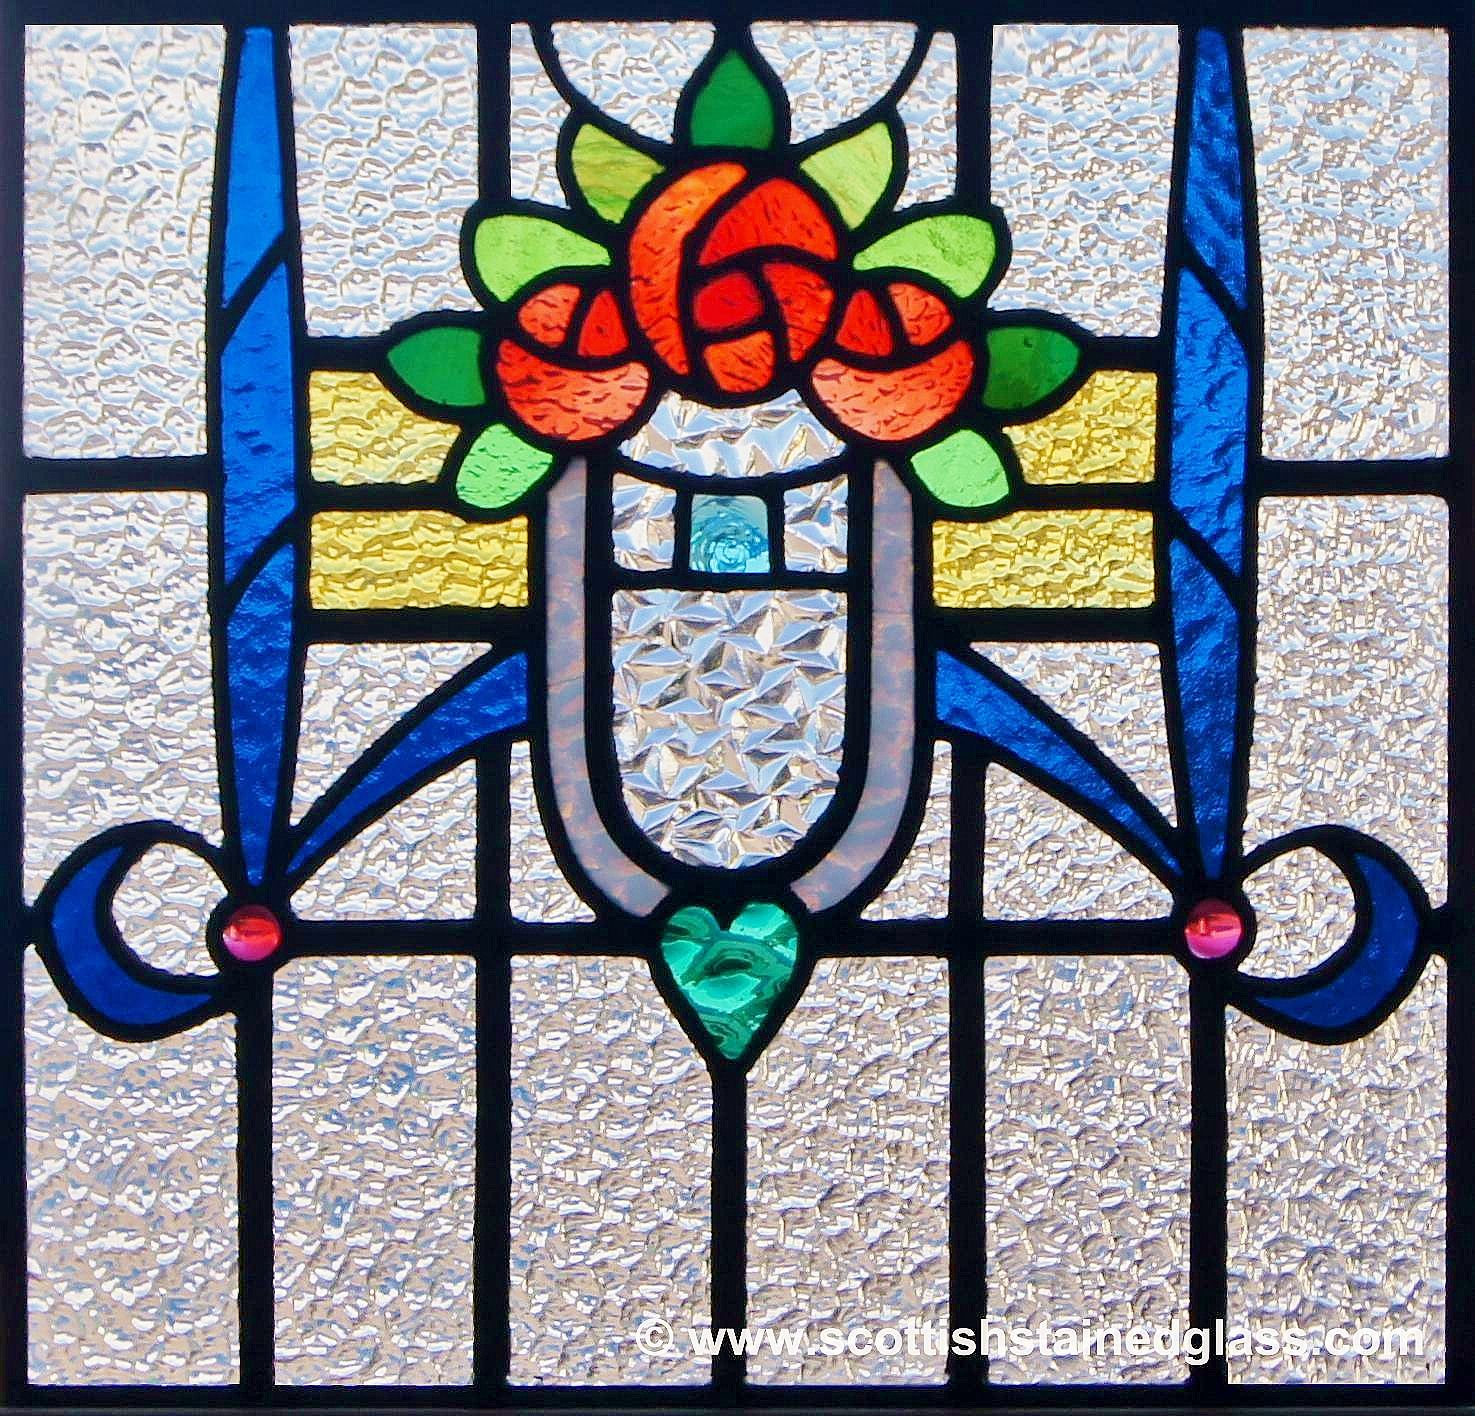 Stained Glass Window Designs : Antique stained glass windows